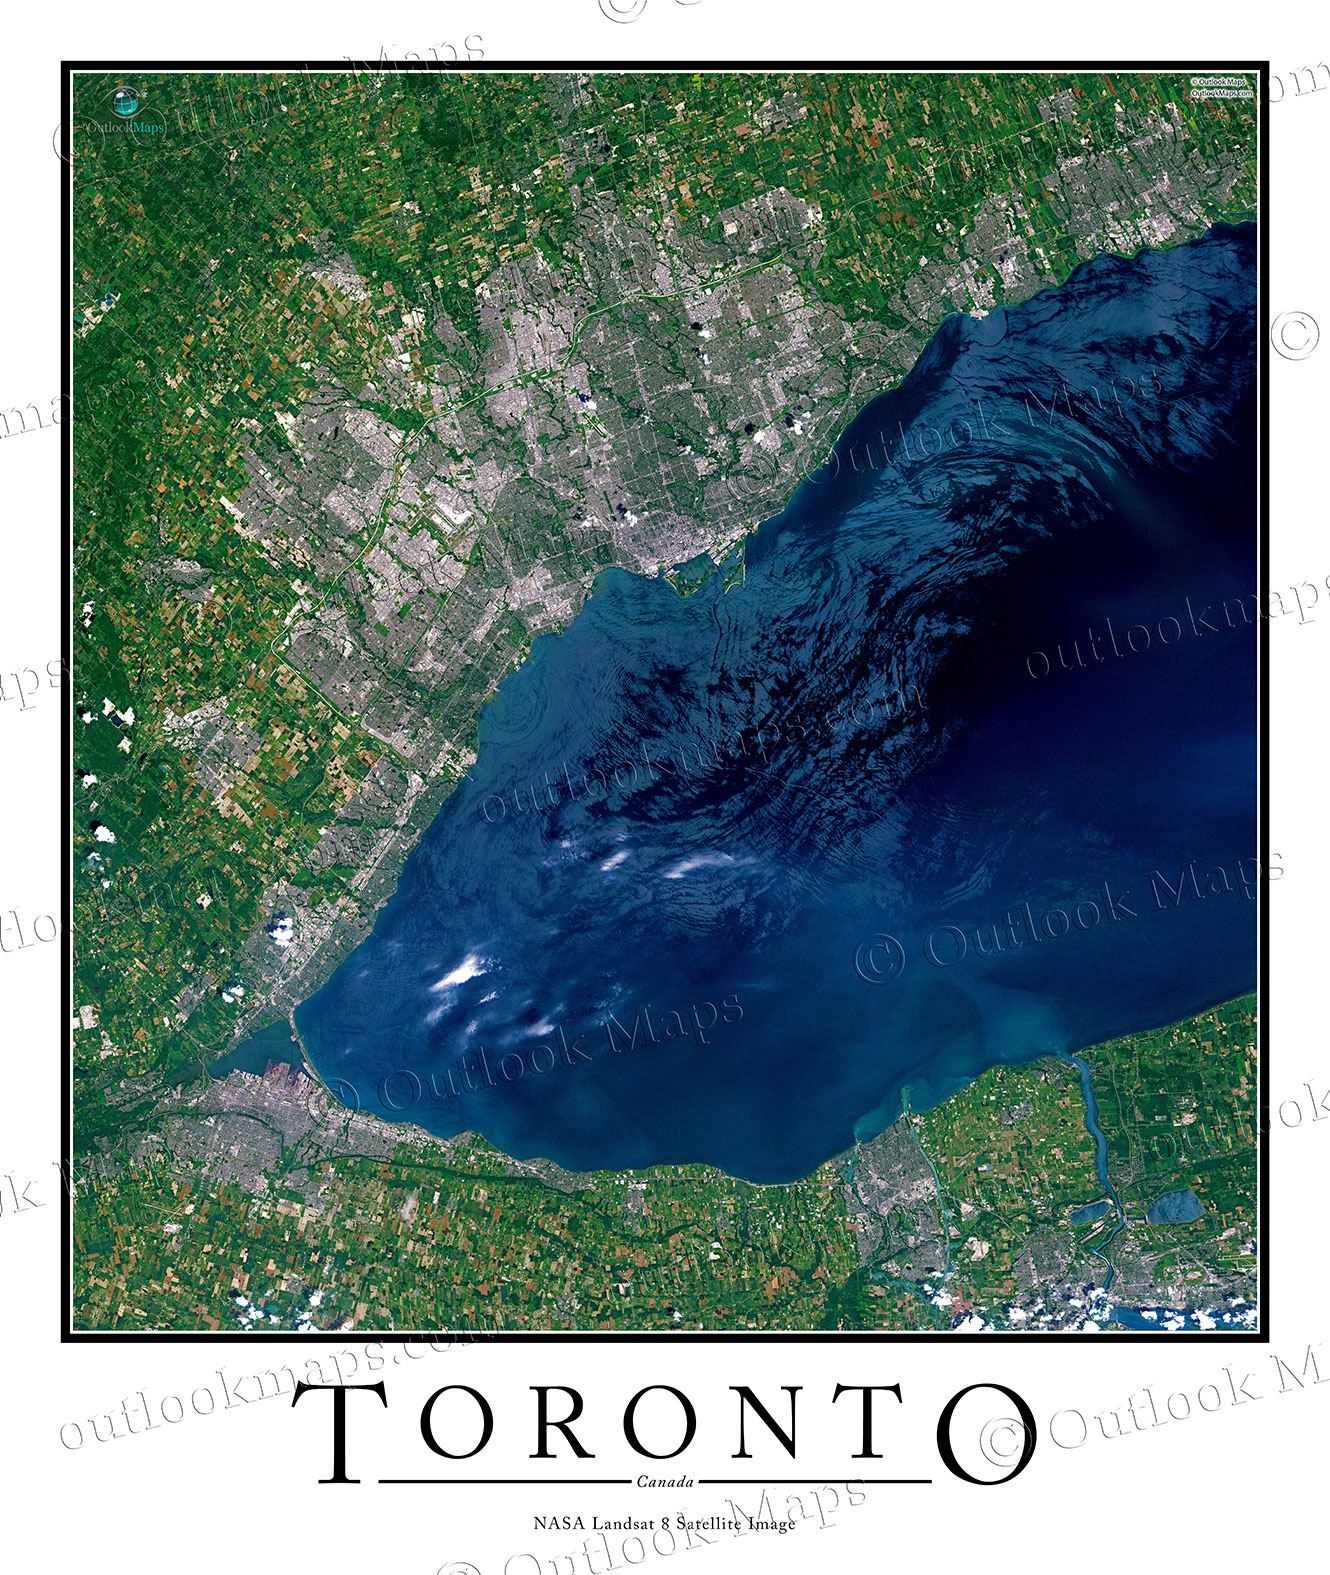 Toronto Satellite Map on weather toronto canada, map of ohio, provinces of canada, map of japan, map of california, map of new york, map of philadelphia, map of las vegas, wonder mountain toronto canada, map of hong kong, map of istanbul turkey, map of usa, landmarks toronto canada, hotels in toronto canada, house toronto canada, tourism toronto canada, shopping toronto canada, ontario canada, road map toronto canada, cn tower toronto canada,